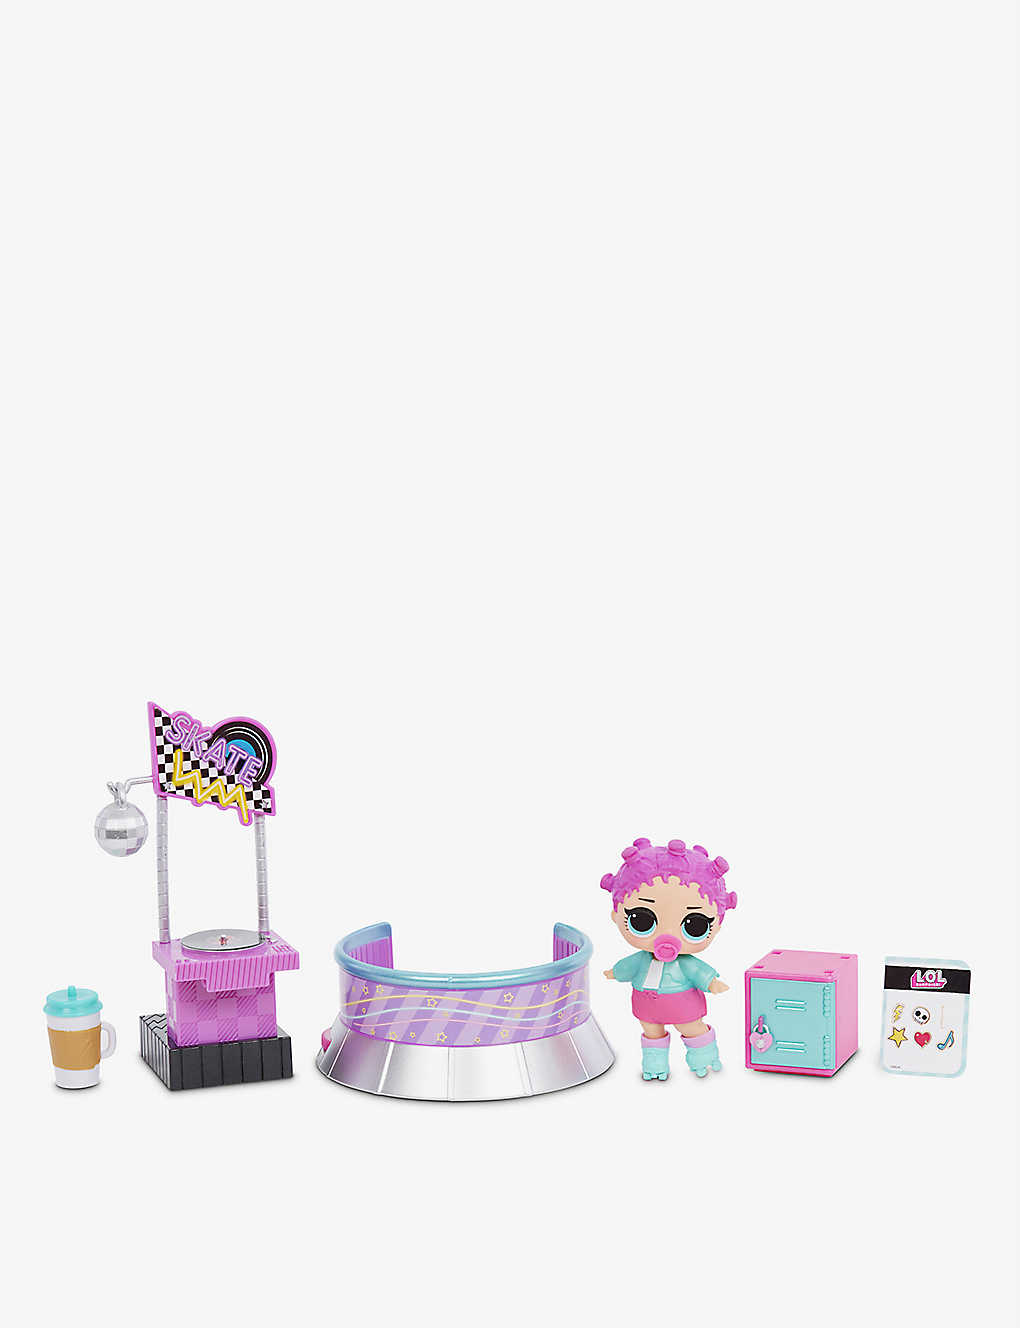 L.O.L. SURPRISE: Furniture Road Trip assorted toy set